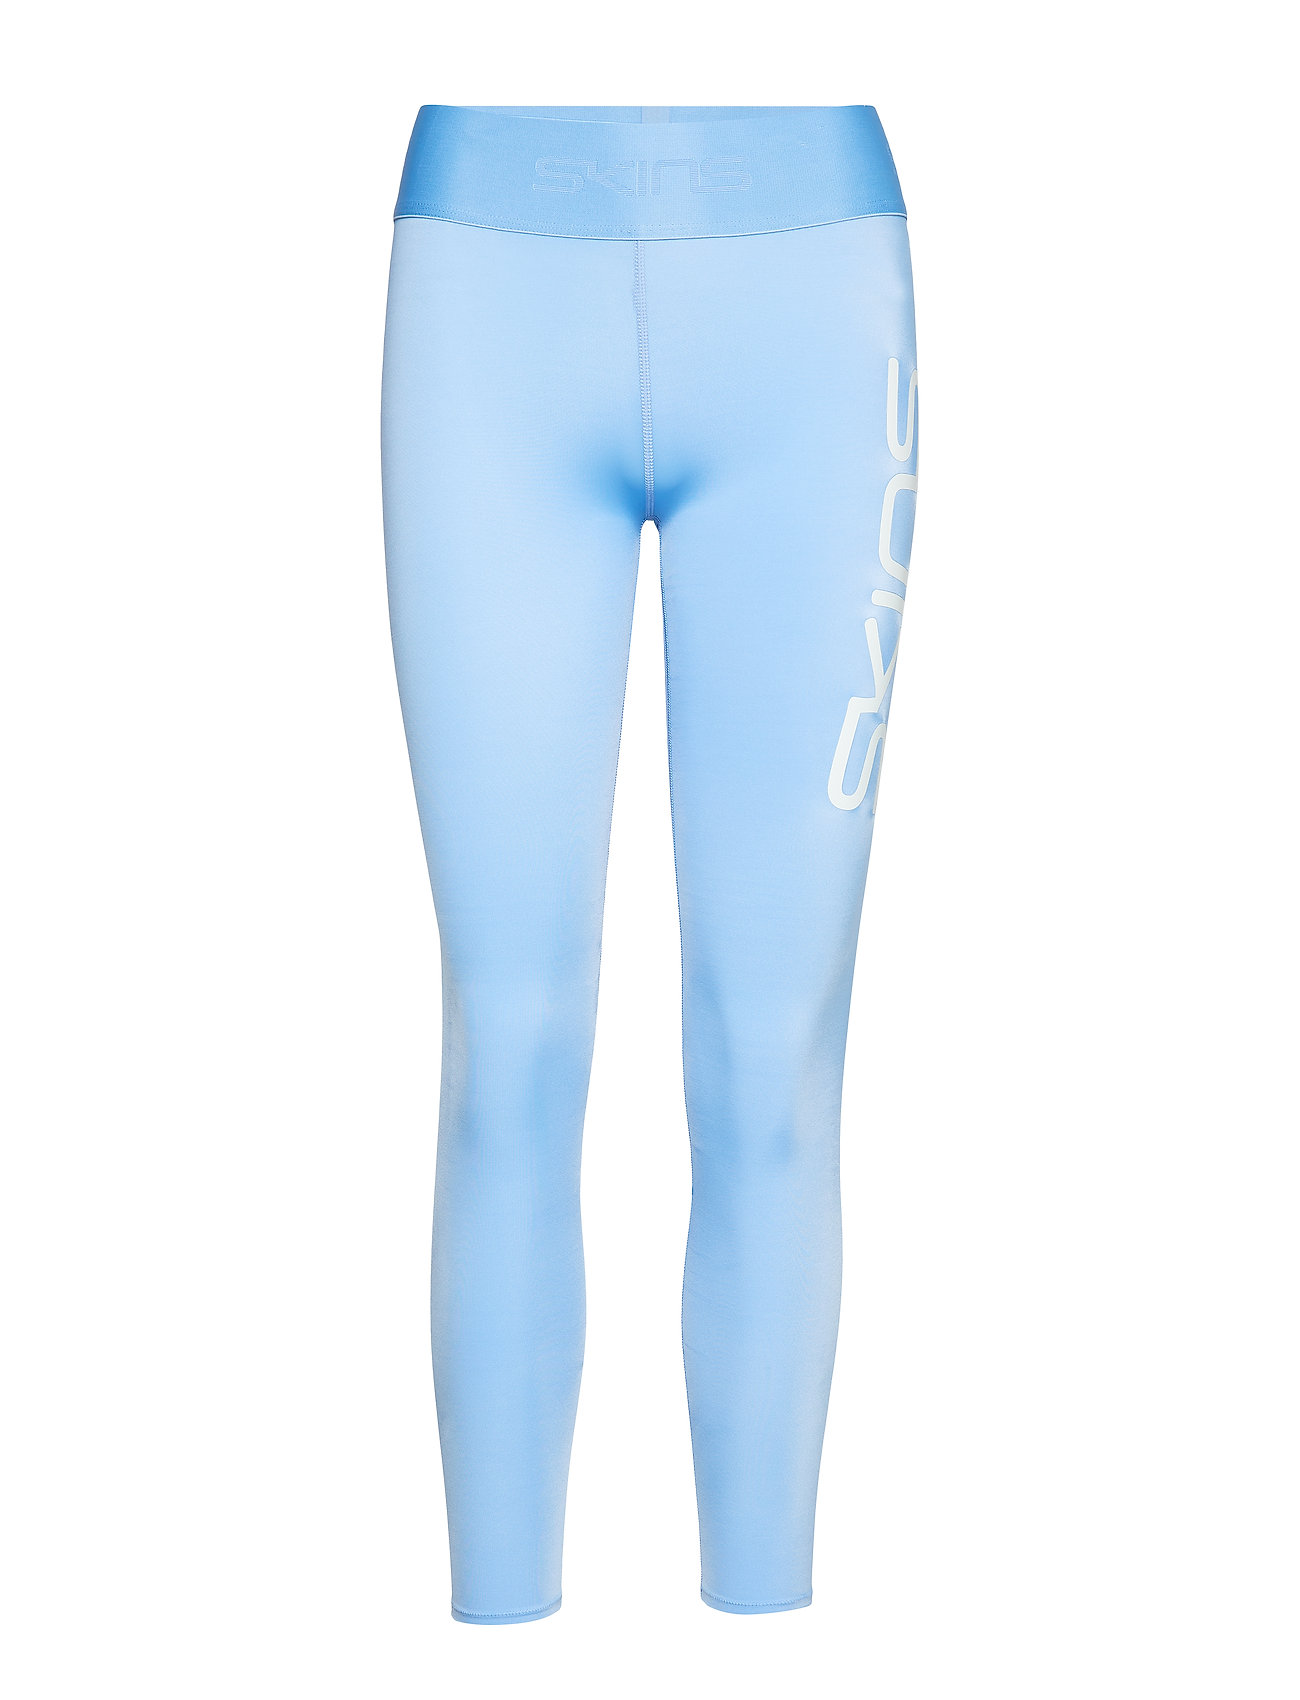 Skins DNAmic Primary Womens Long Tights - SKY BLUE LOGO